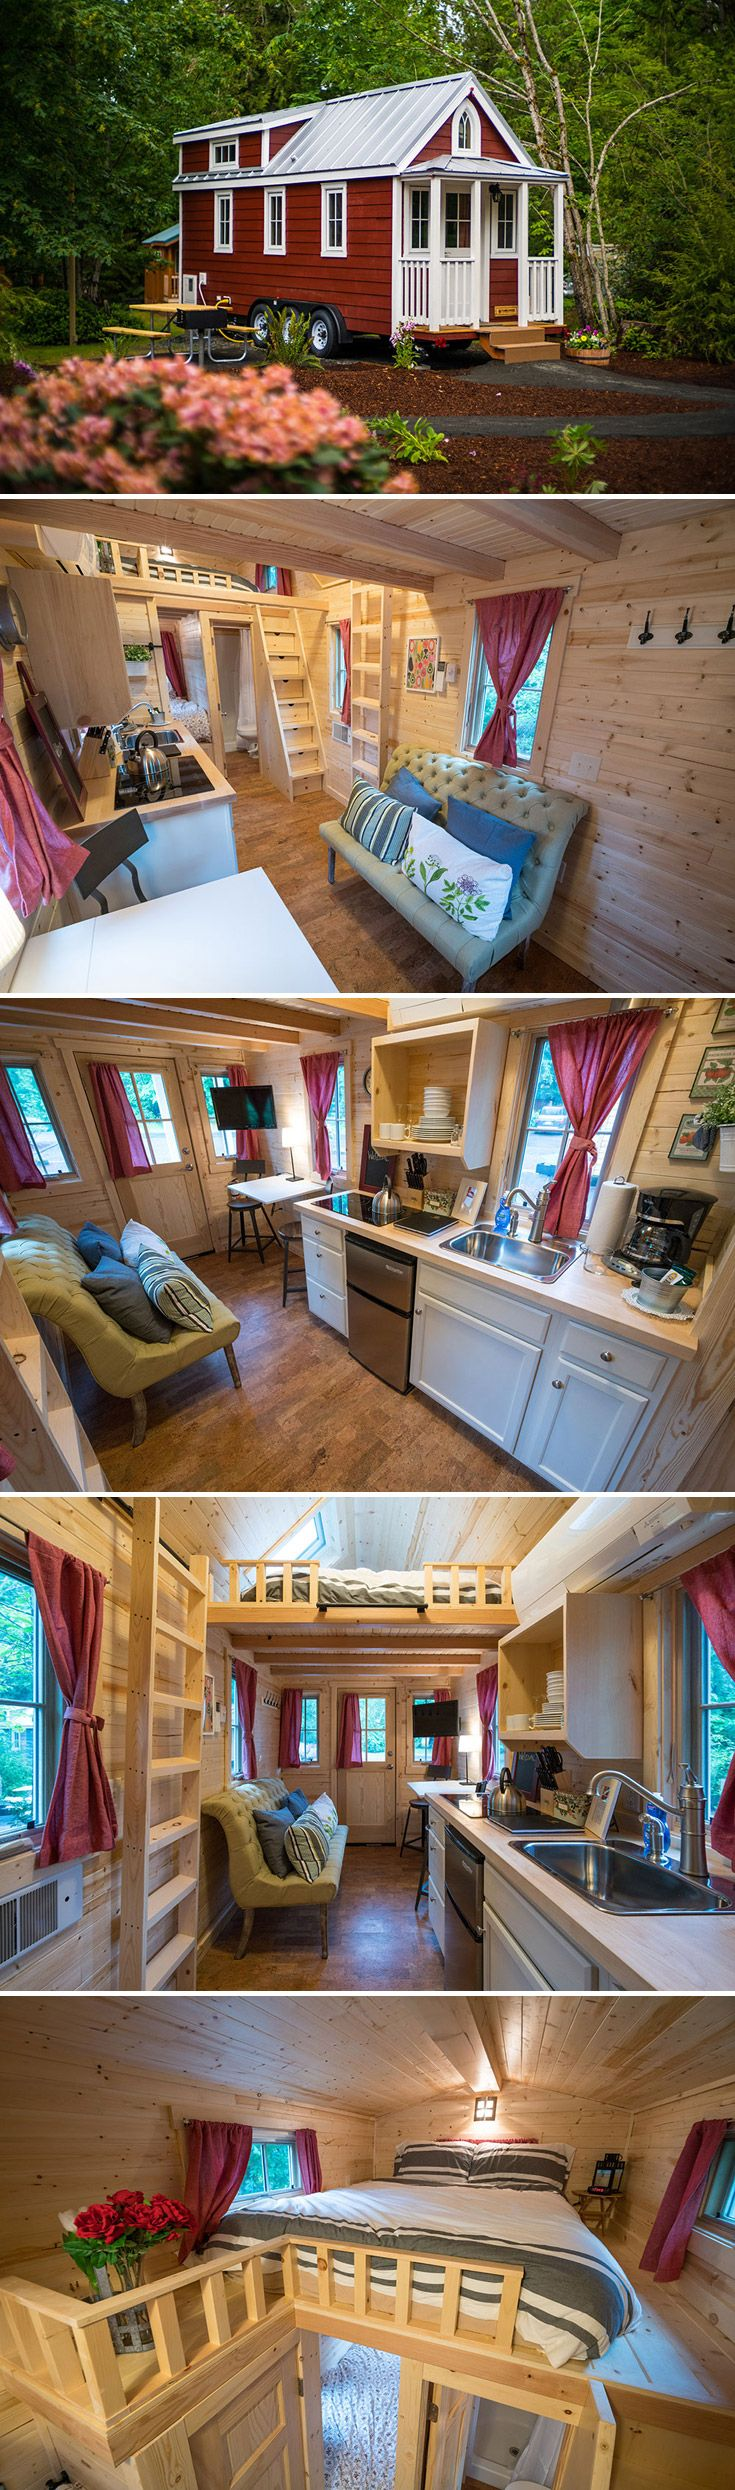 This 233 sq.ft. tiny house is based on the Elm design by Tumbleweed Tiny House Company.  Available for rent an hour outside of Portland, Oregon.